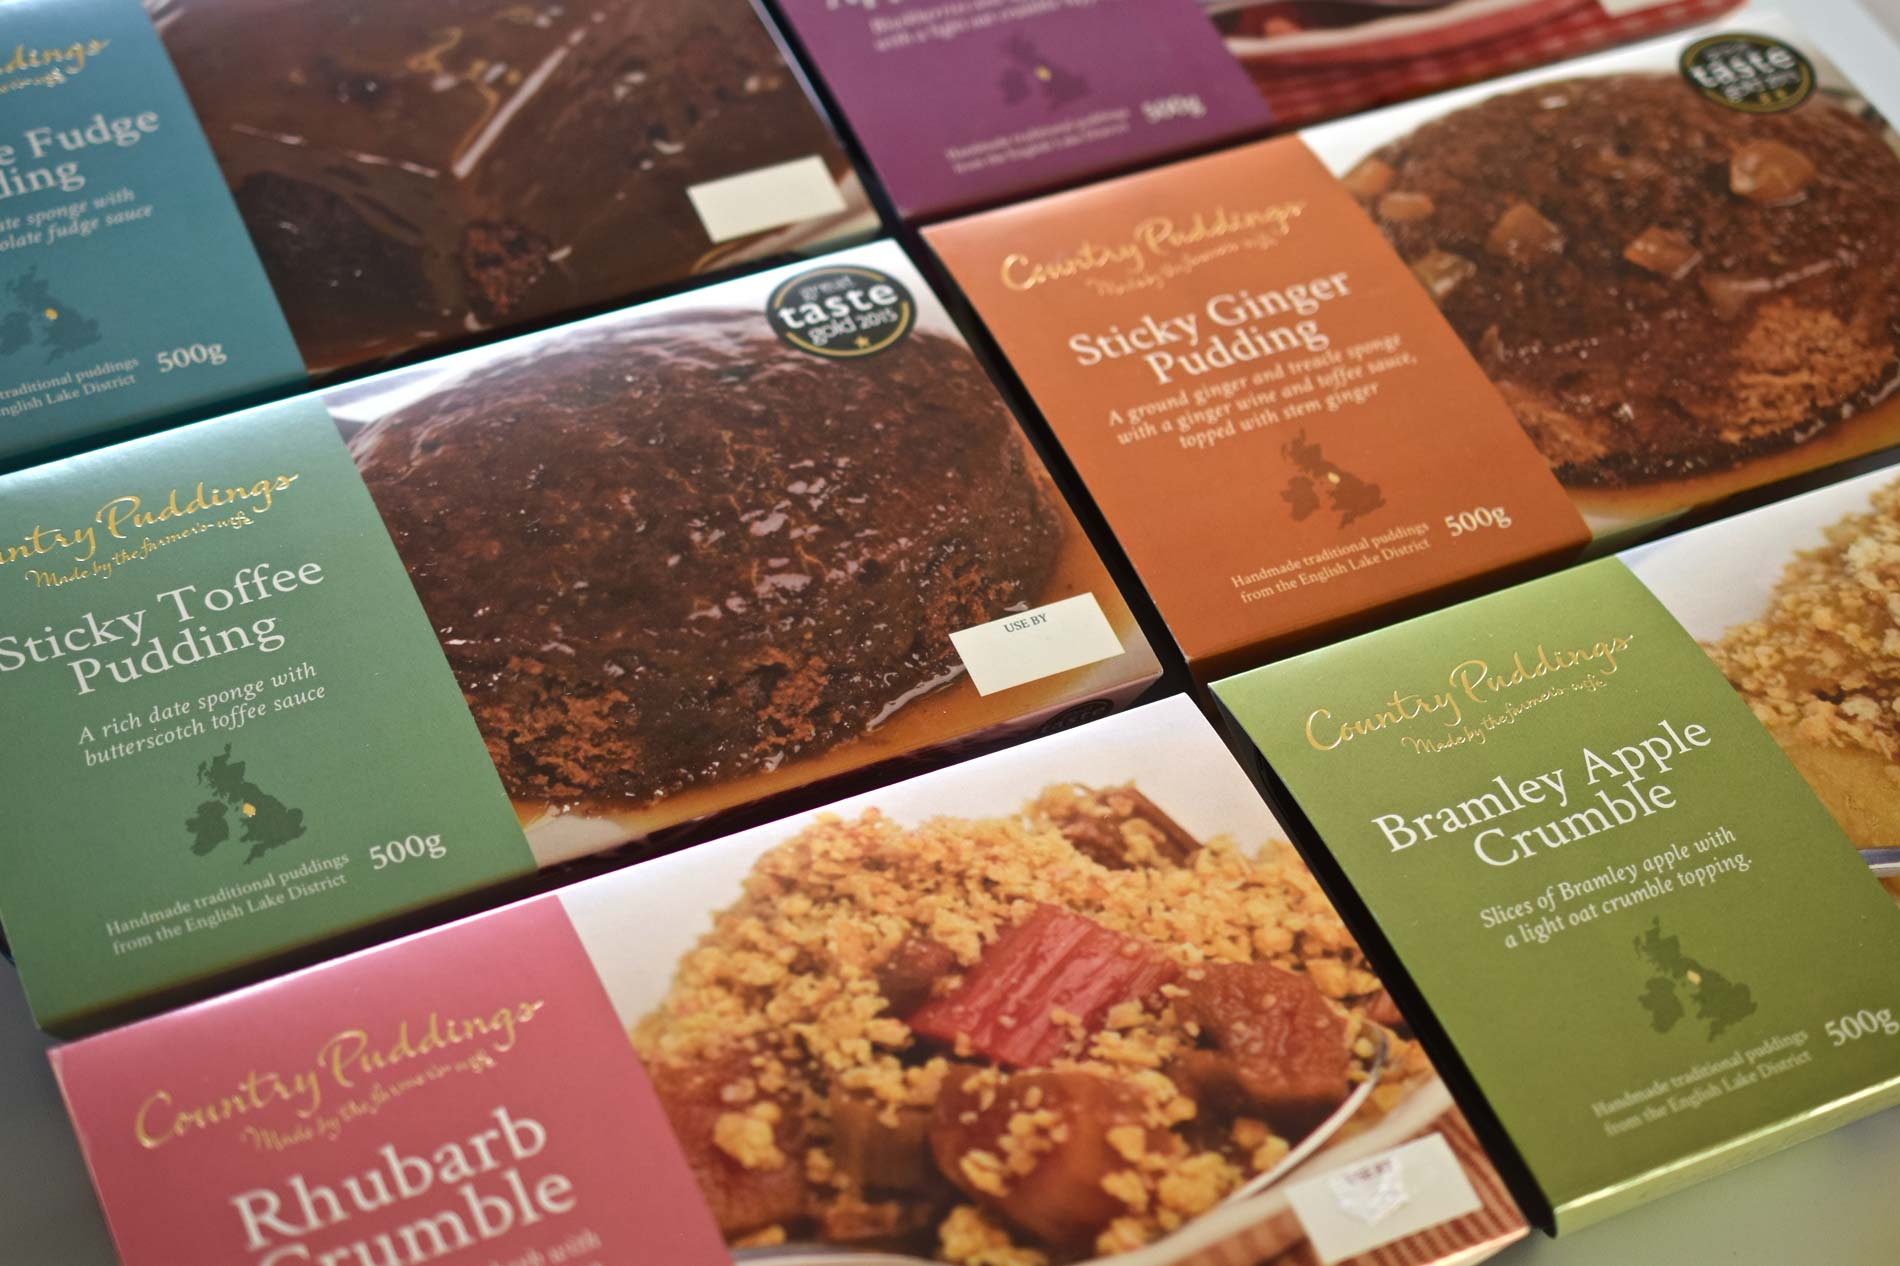 Country Puddings branding, logo and packaging design